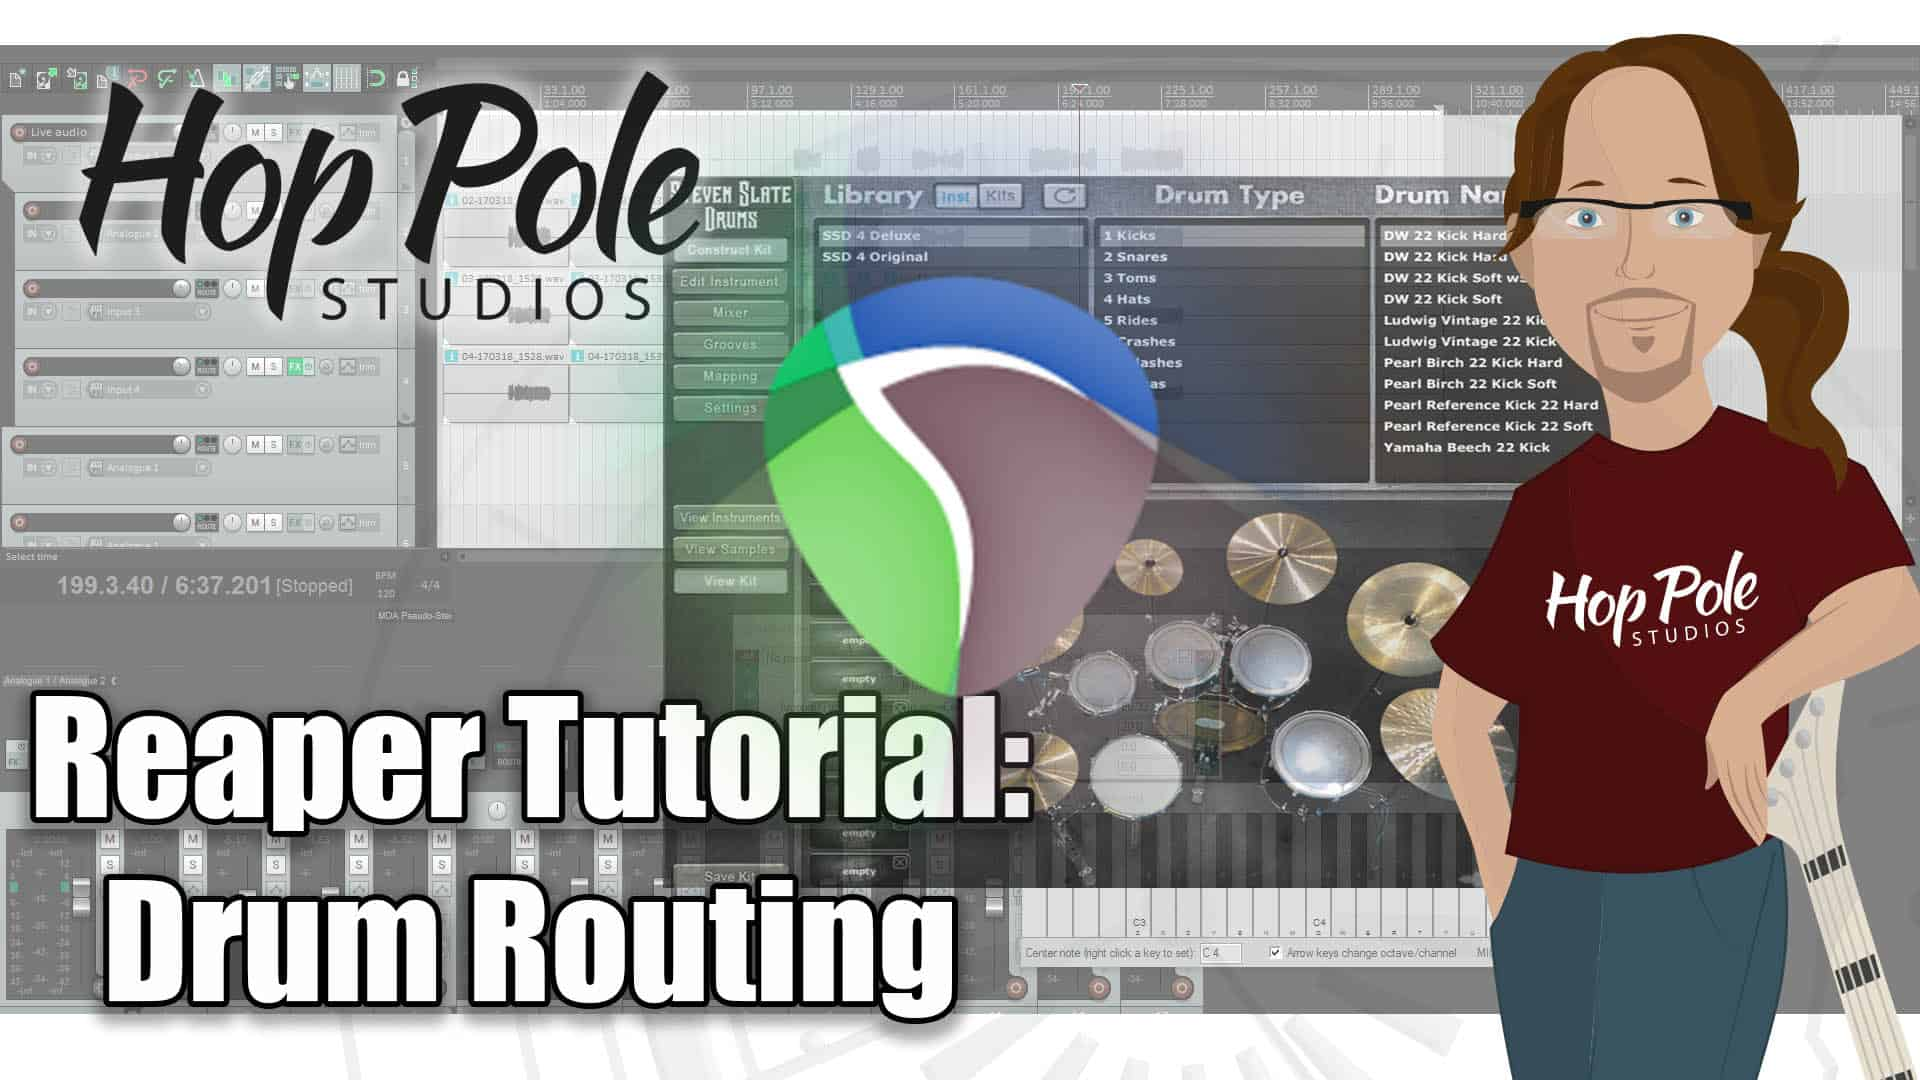 Reaper DAW 101 Part 3:- Drum Routing for VST – Steven Slate Drums and Superior Drummer 2